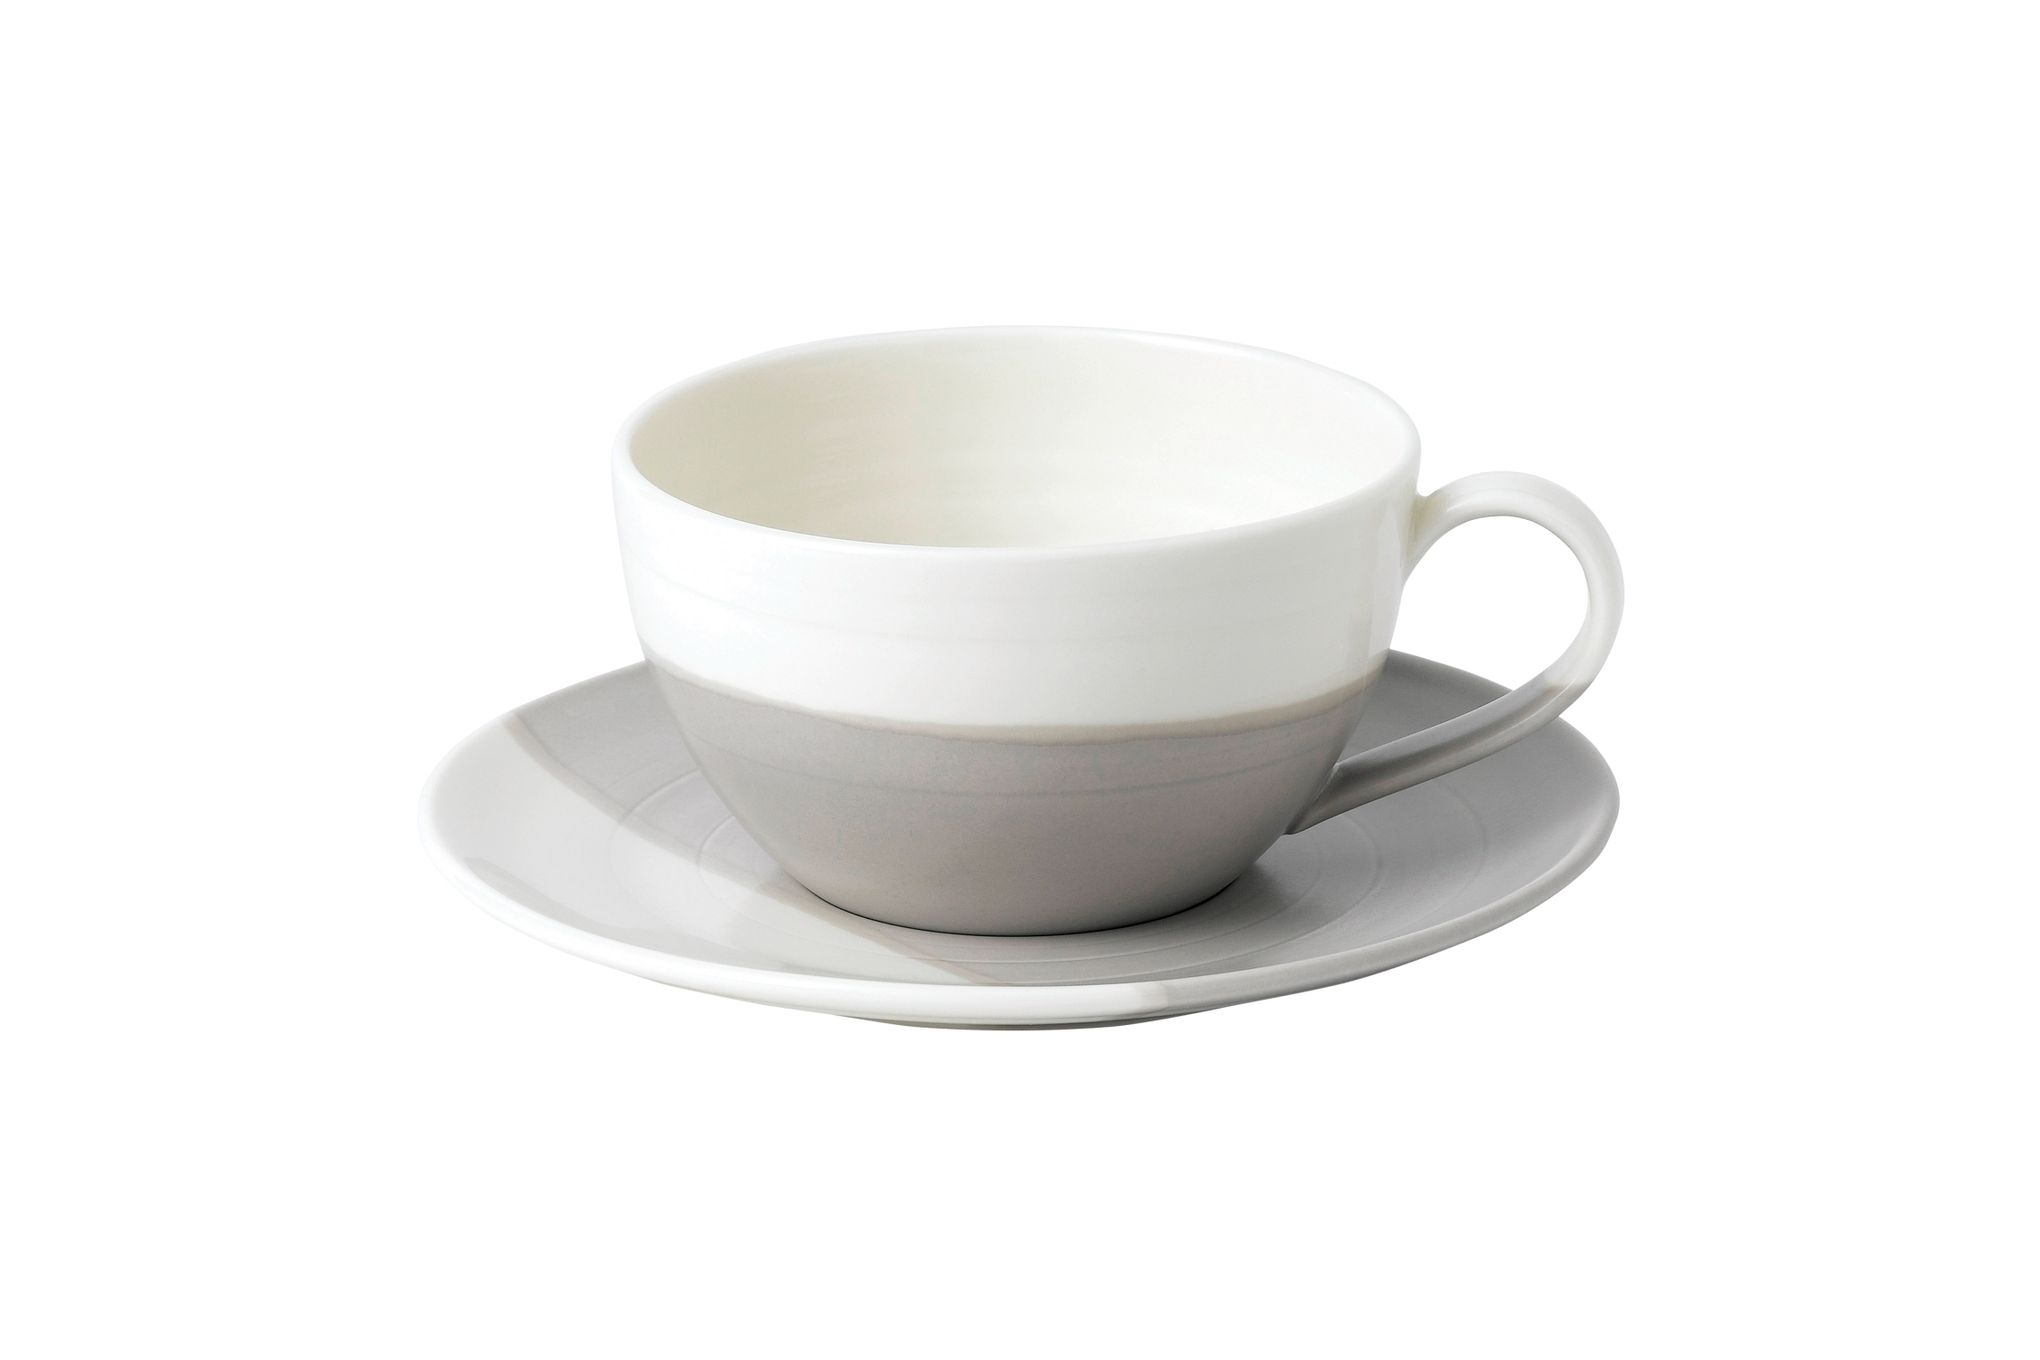 Royal Doulton Coffee Studio Latte Cup and Saucer 440ml thumb 1